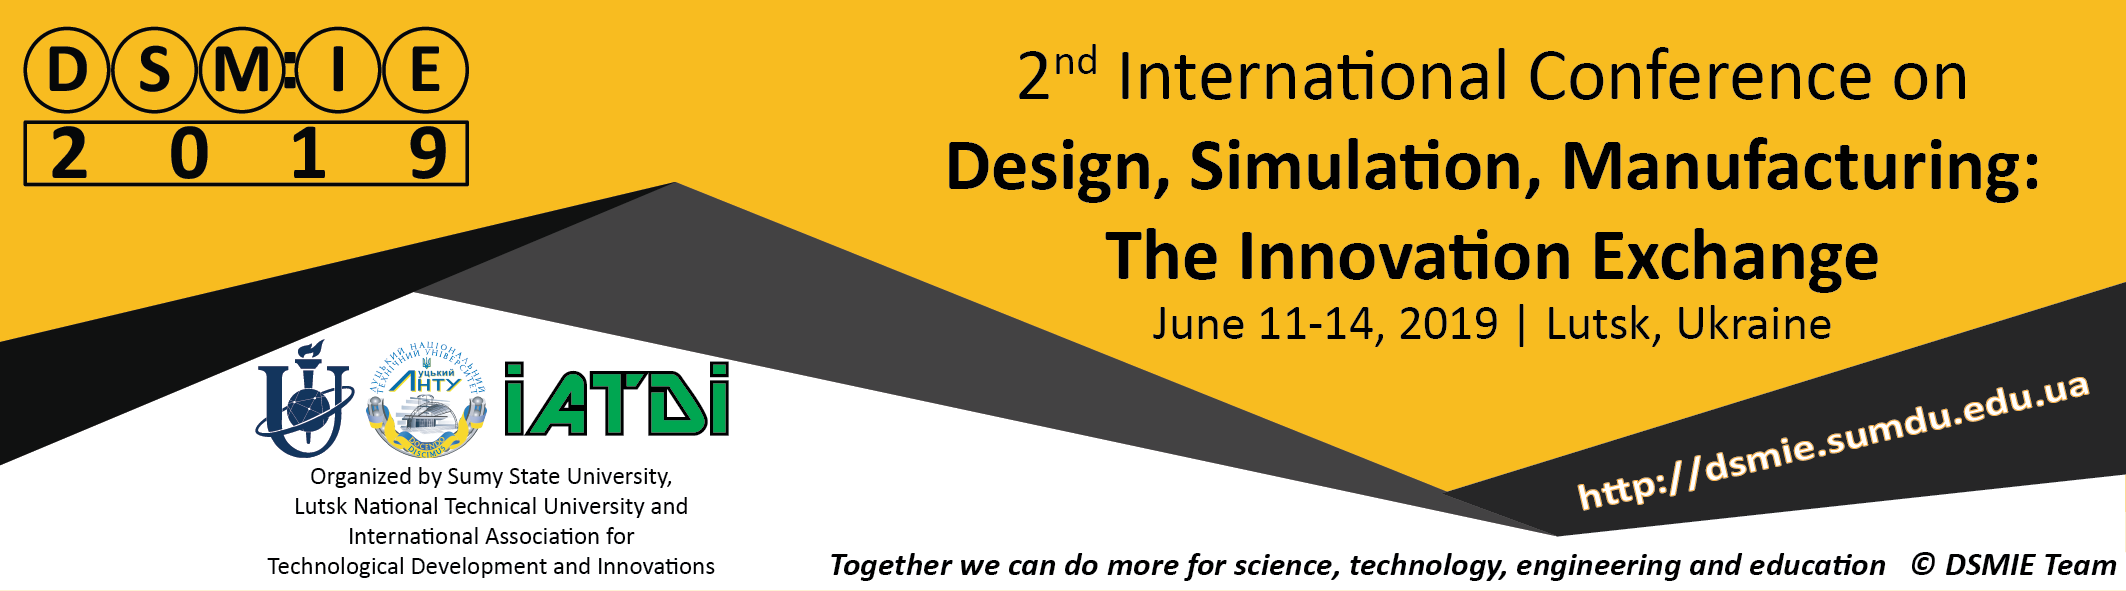 Dsmie 2019 invitation letter 2nd international conference on design simulation manufacturing the innovation exchange dsmie 2019 focuses on a broad range of research challenges in stopboris Images